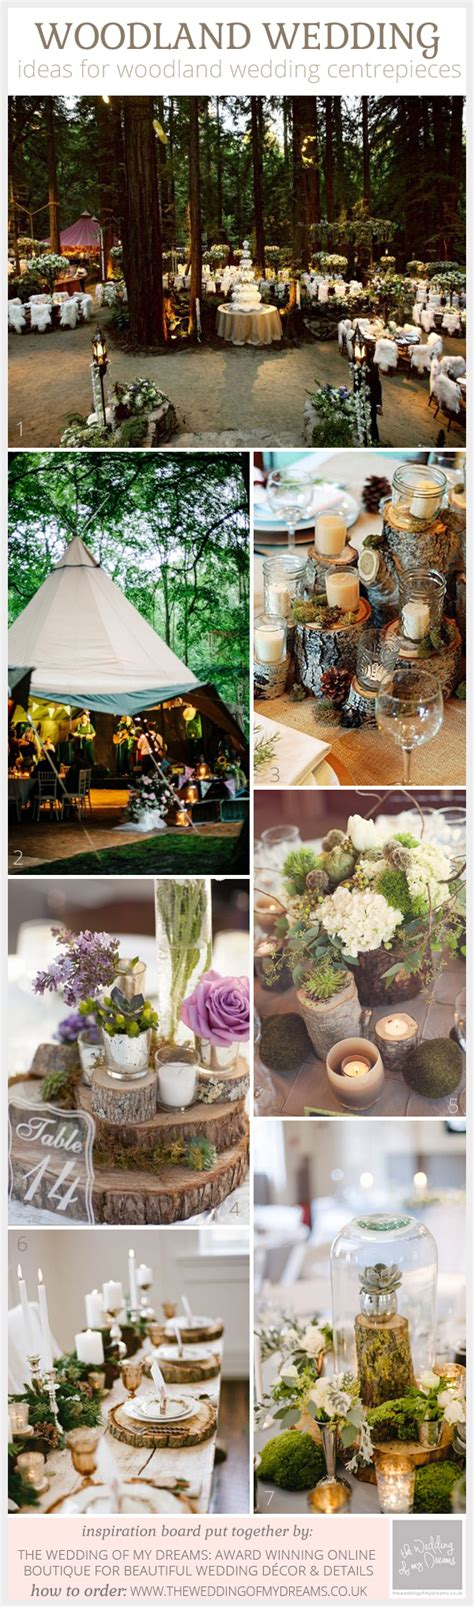 Wedding Centrepiece Ideas by Woodland Wedding Centrepiece Ideas The Wedding Of My